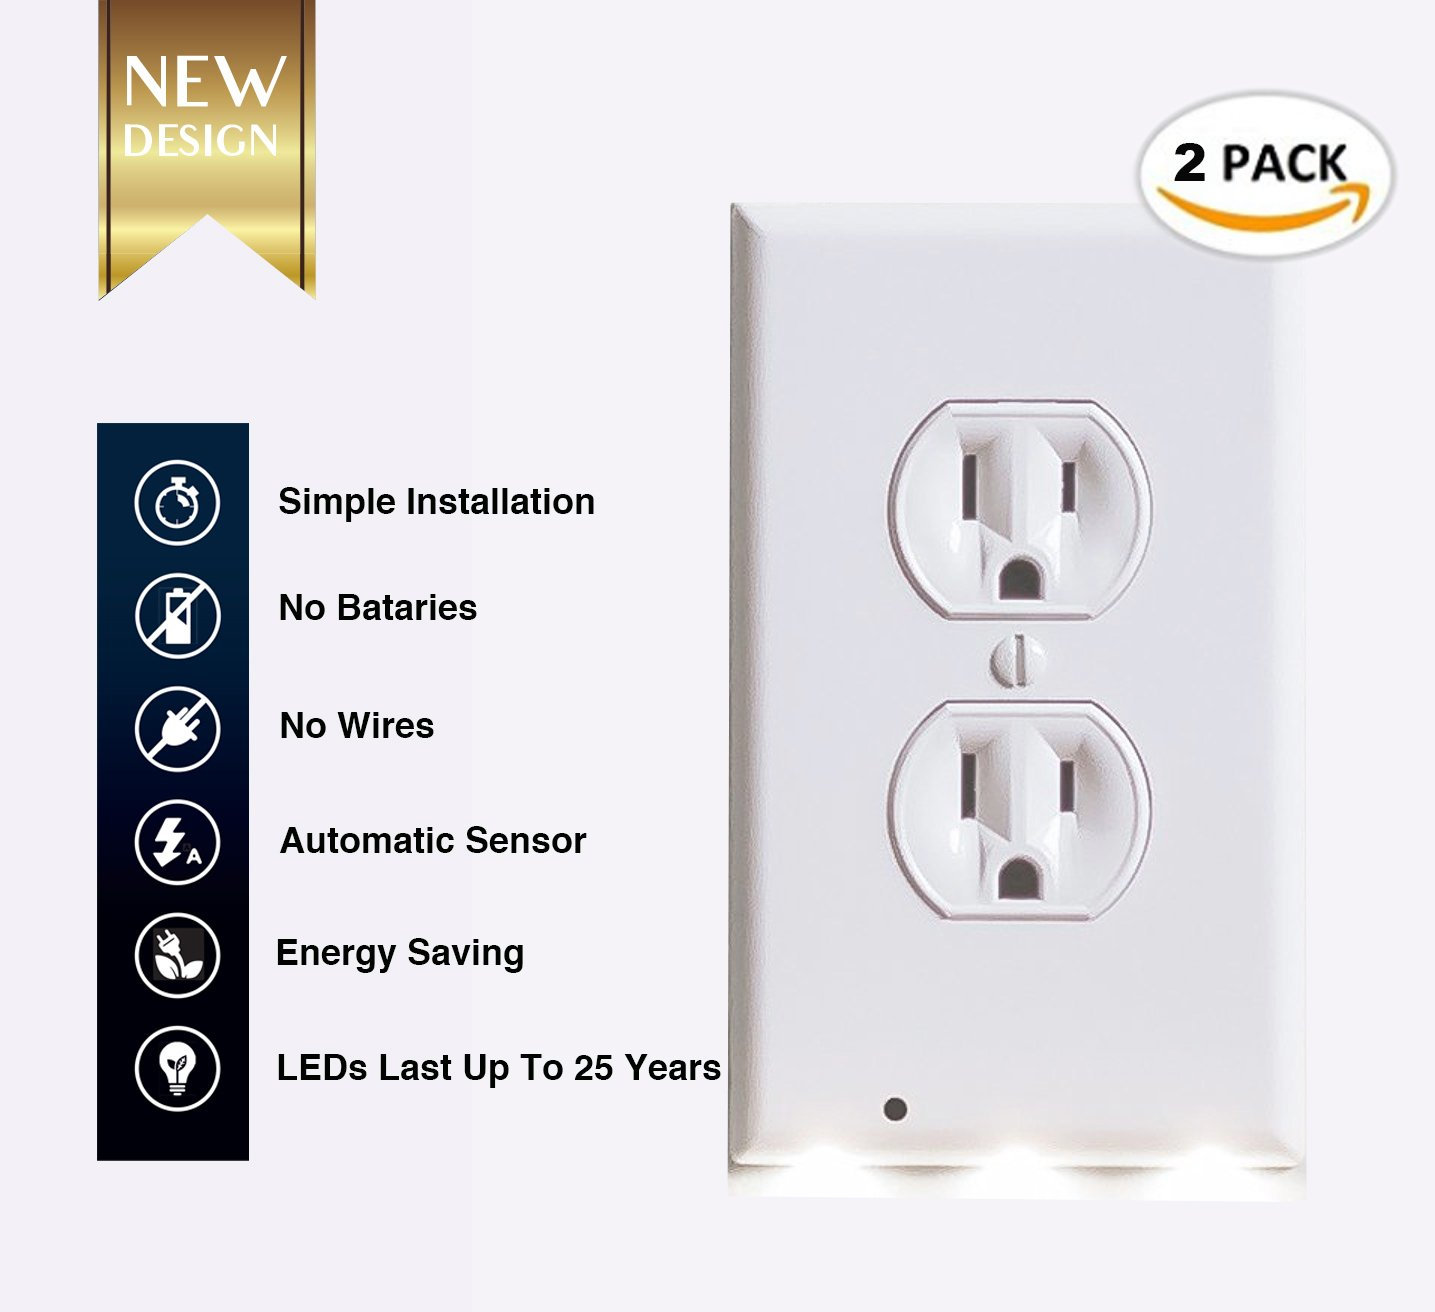 (2 pack) Outlet wall plate with Led night light – Guidelight - Outlet Wall Cover Plate Receptacle With Energy Efficient LED Lights - Built in sensor - No wire - White (2, duplex)